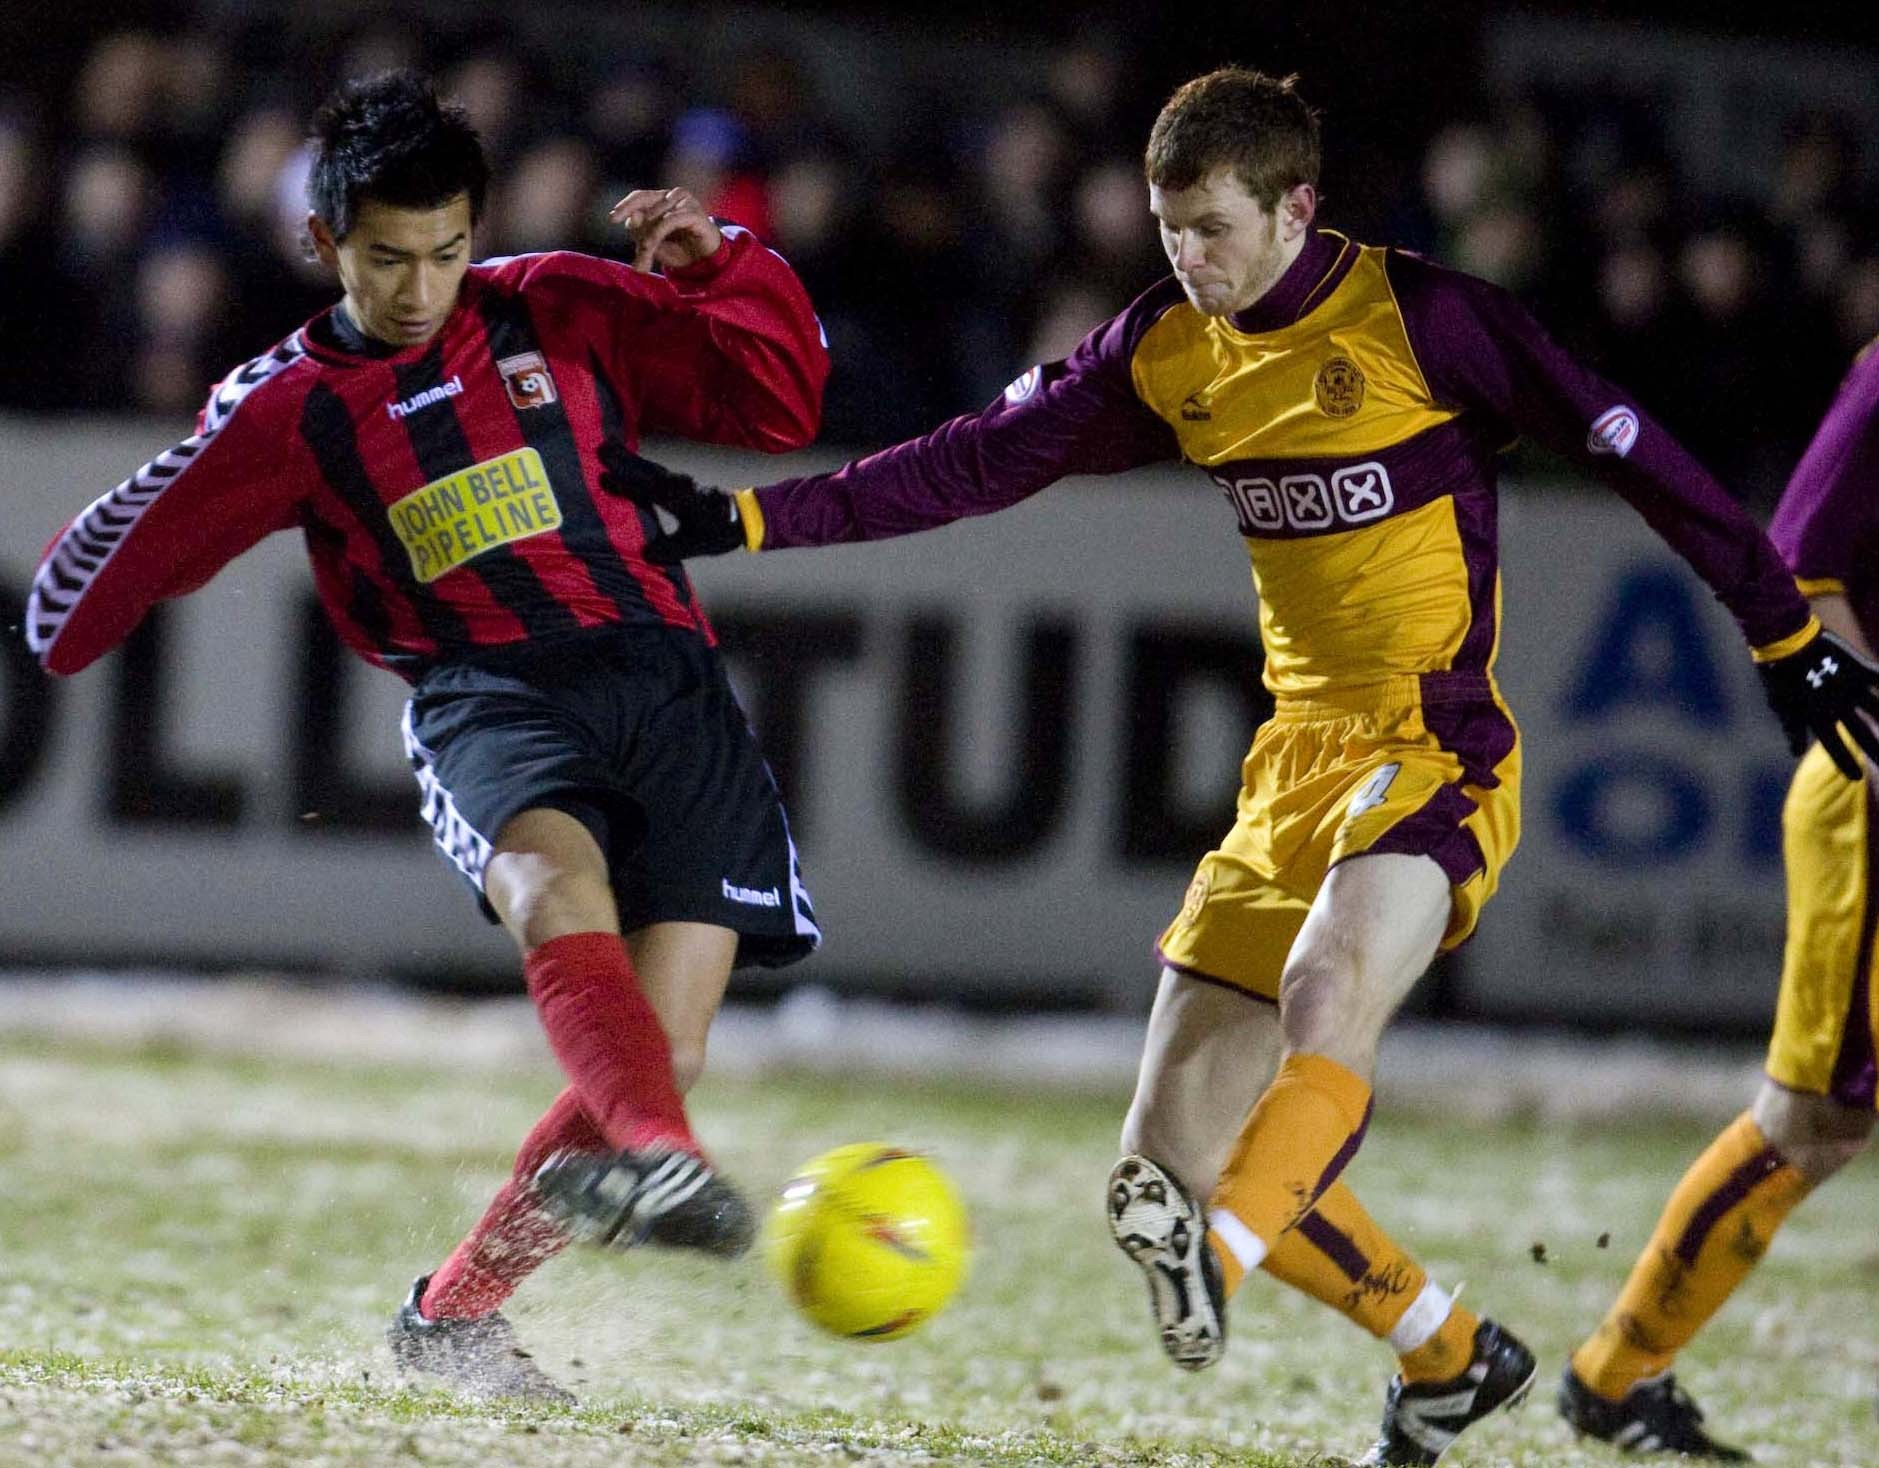 Inveruries Locos Vietnamese star Thanh-Tan Tran braves the cold as he tries to slide the ball past Mark Reynolds.